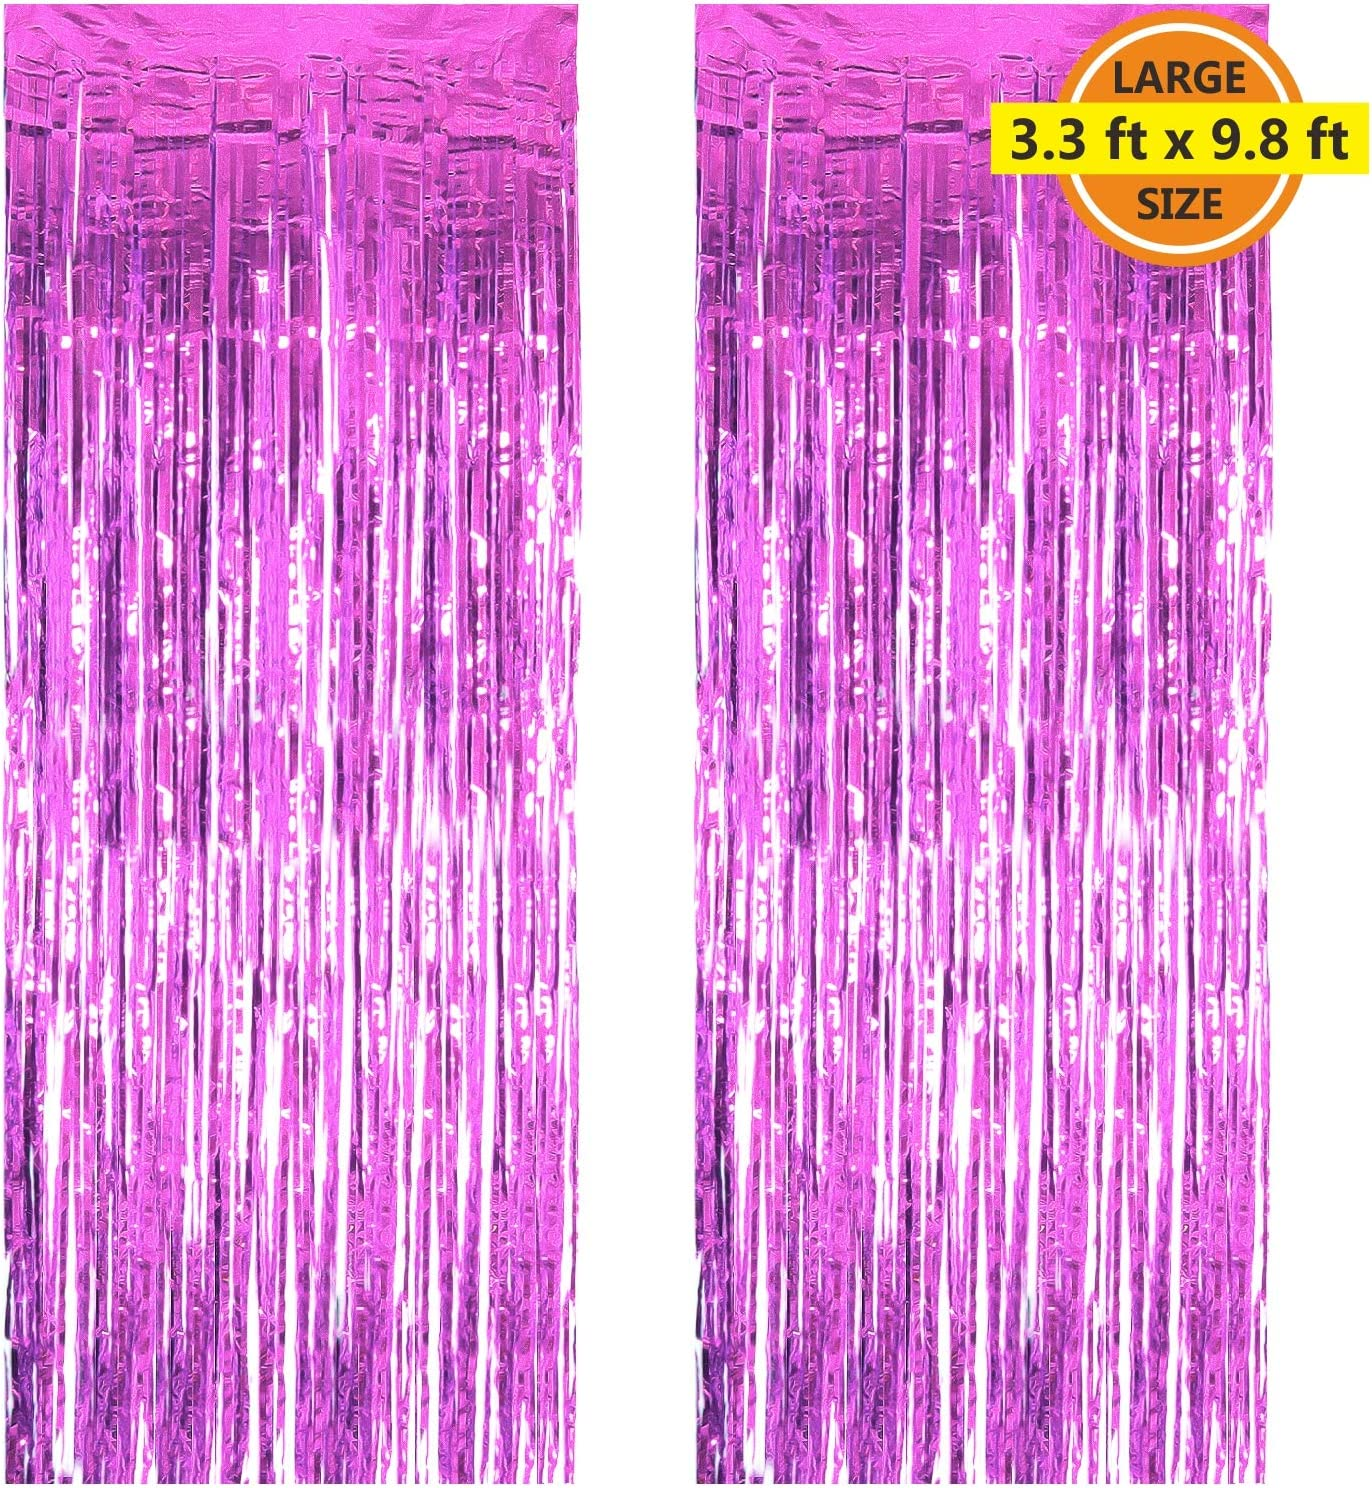 2 Pack 3.3 ft x 9.8 ft Foil Curtains Metallic Fringe Curtains Shimmer Curtain Photo Backdrop for Halloween Christmas Birthday Party Wedding Decor (Pink)